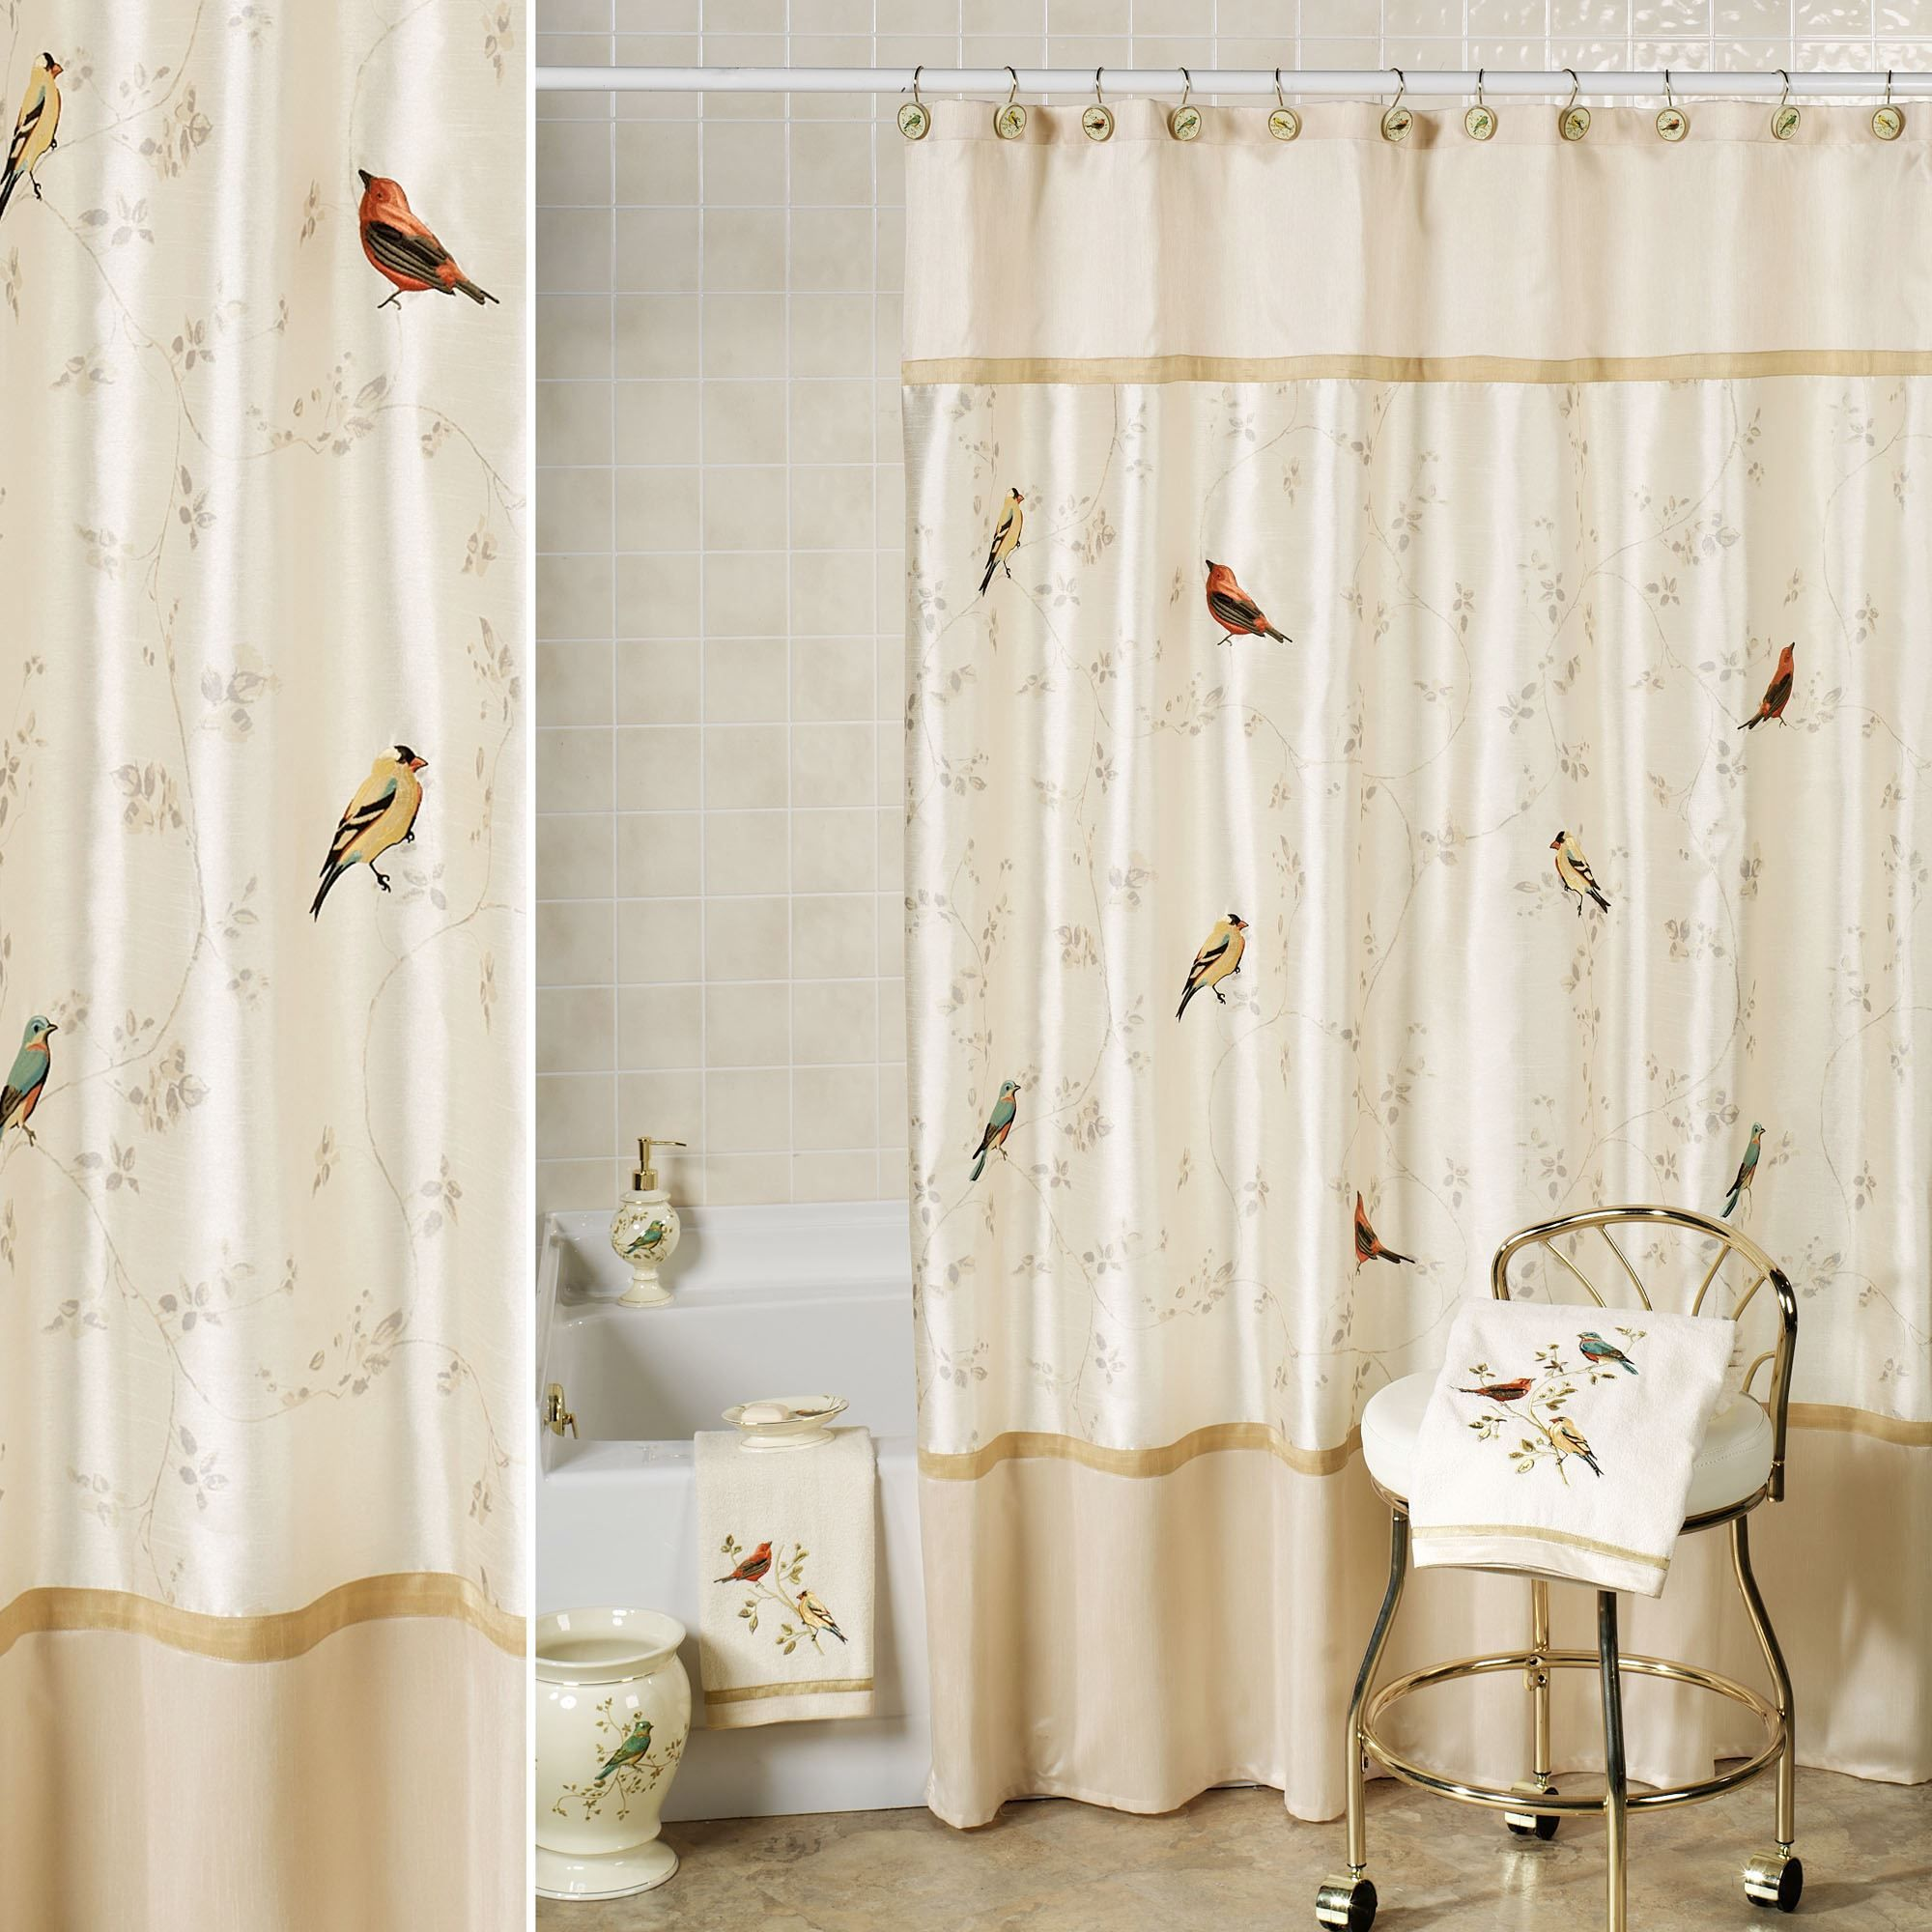 shower modern century beautiful mid curtains unique and kraken of curtain appworship design character hypermallapartments beachy